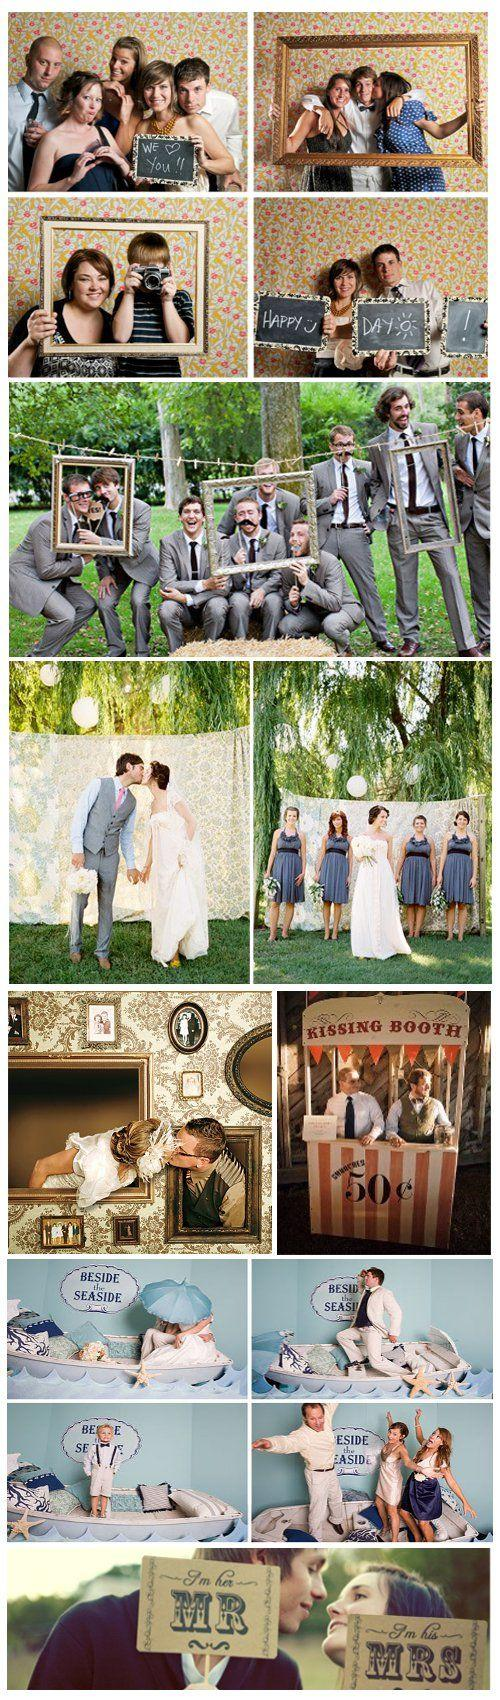 Свадьба - Wedding Photo Booth Ideas